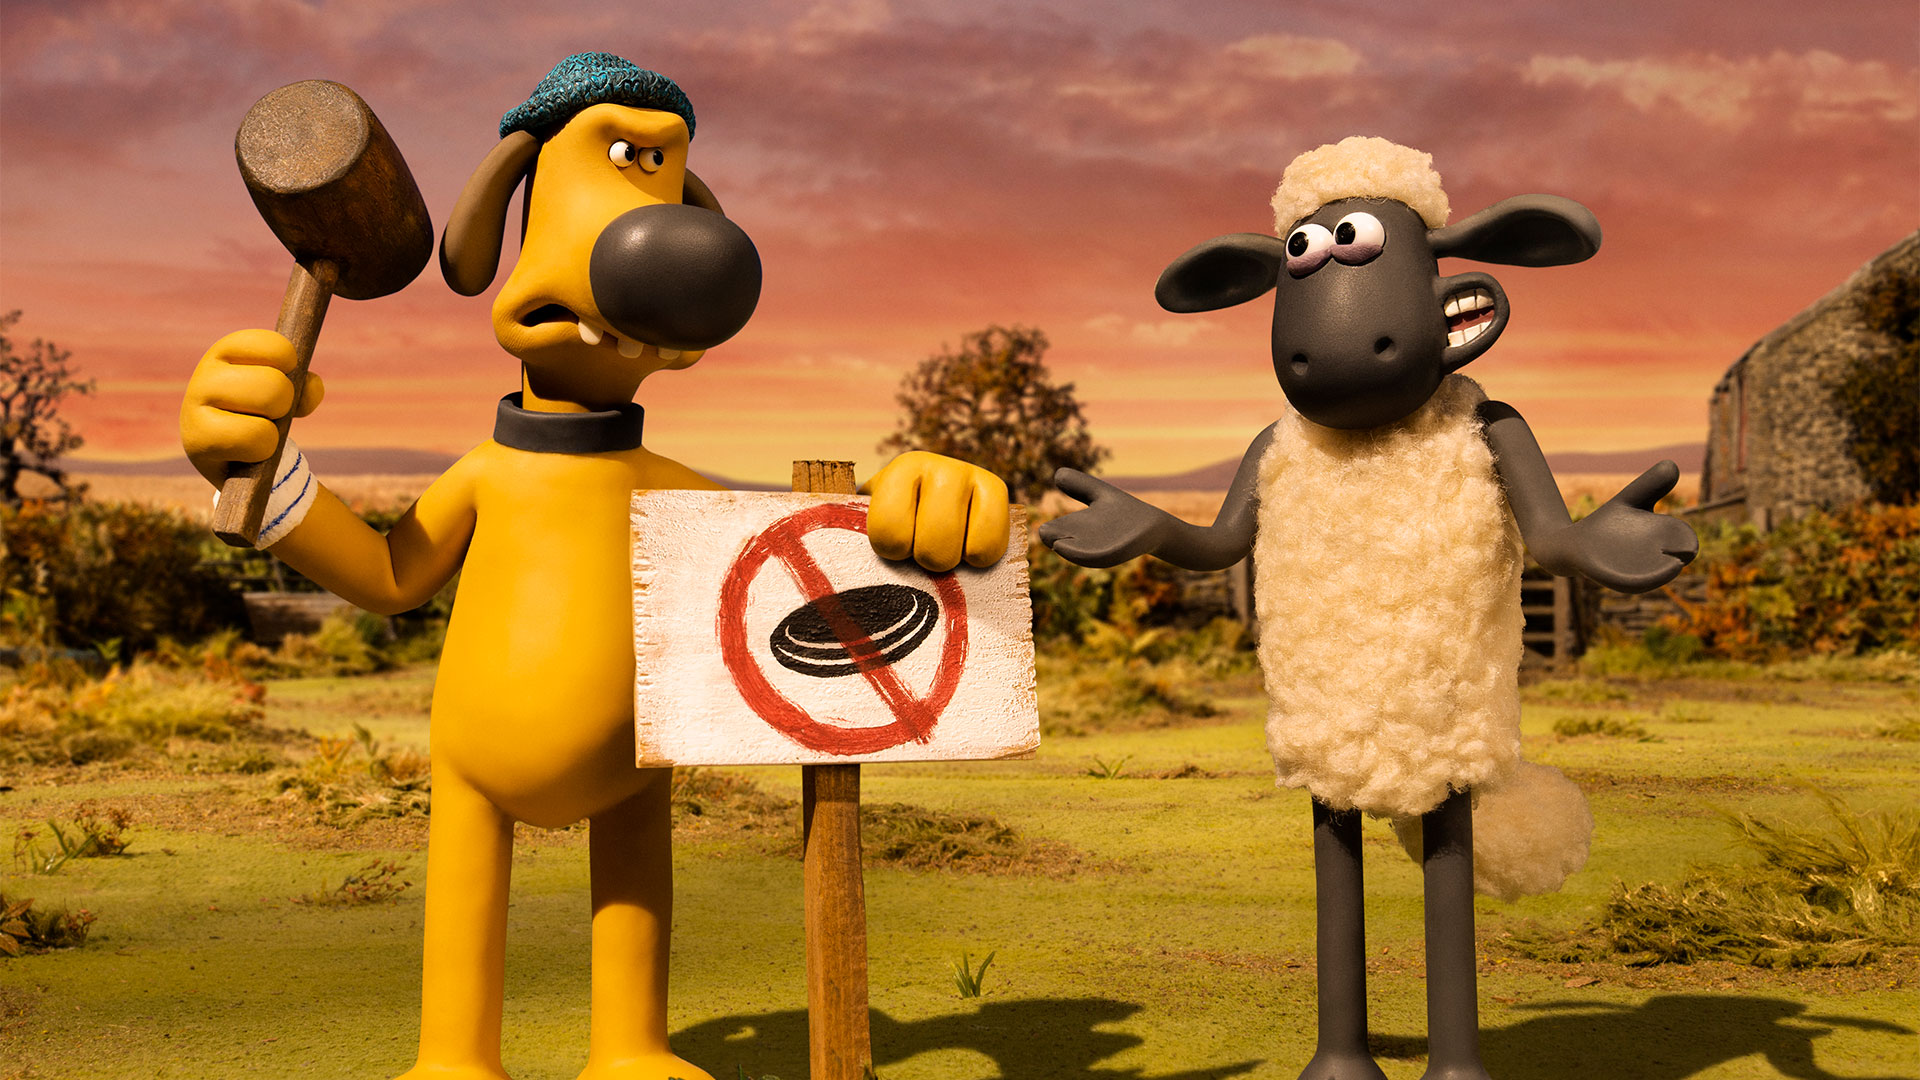 shaun sheep jump rope - HD 1920×1080